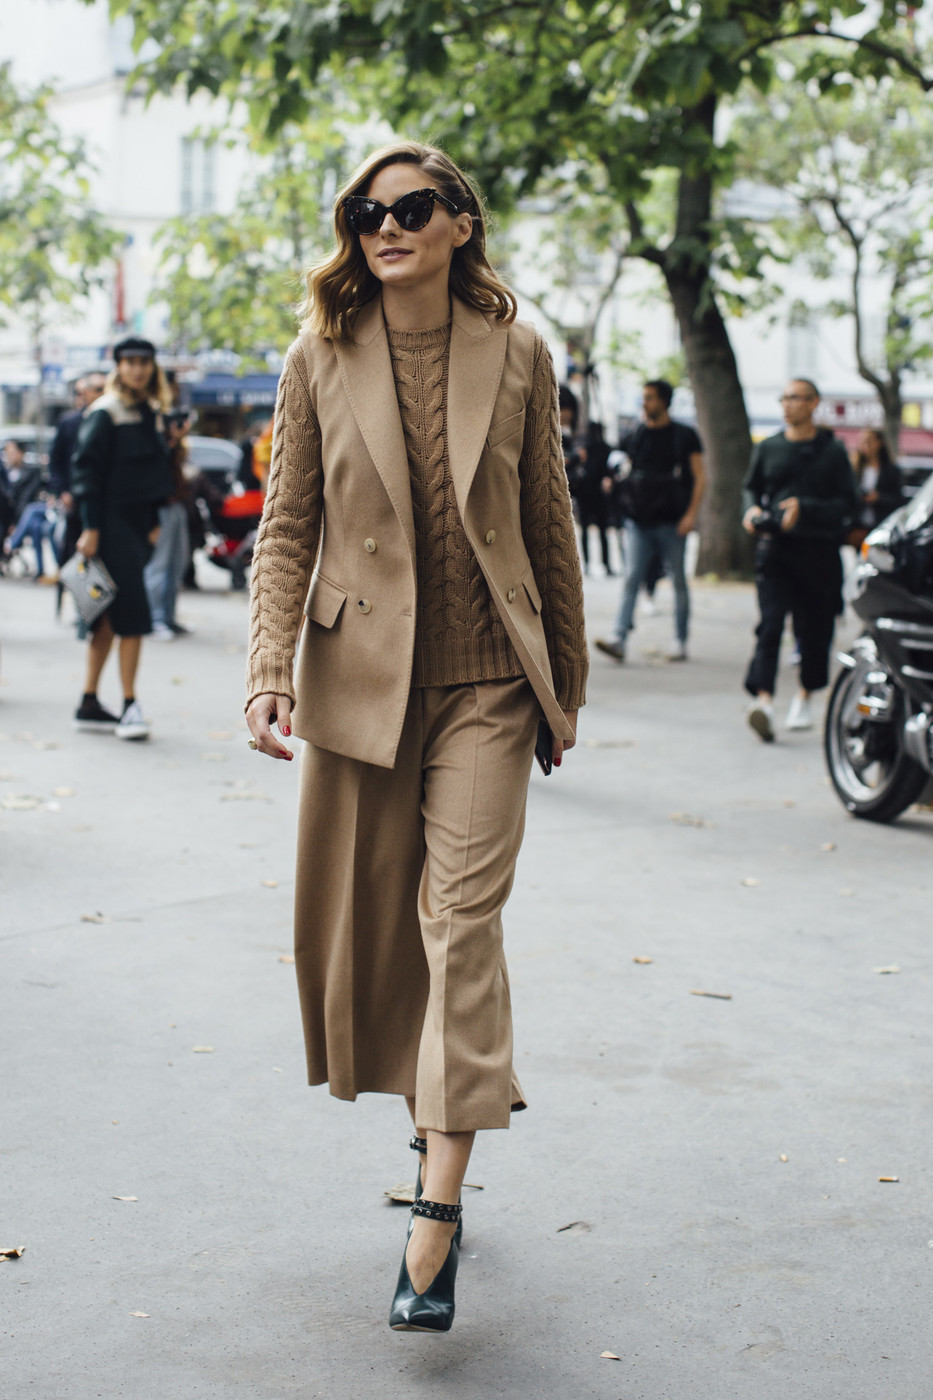 Olivia Palermo 39 S Neutrals The Best Outfits Worn To Paris Fashion Week Livingly